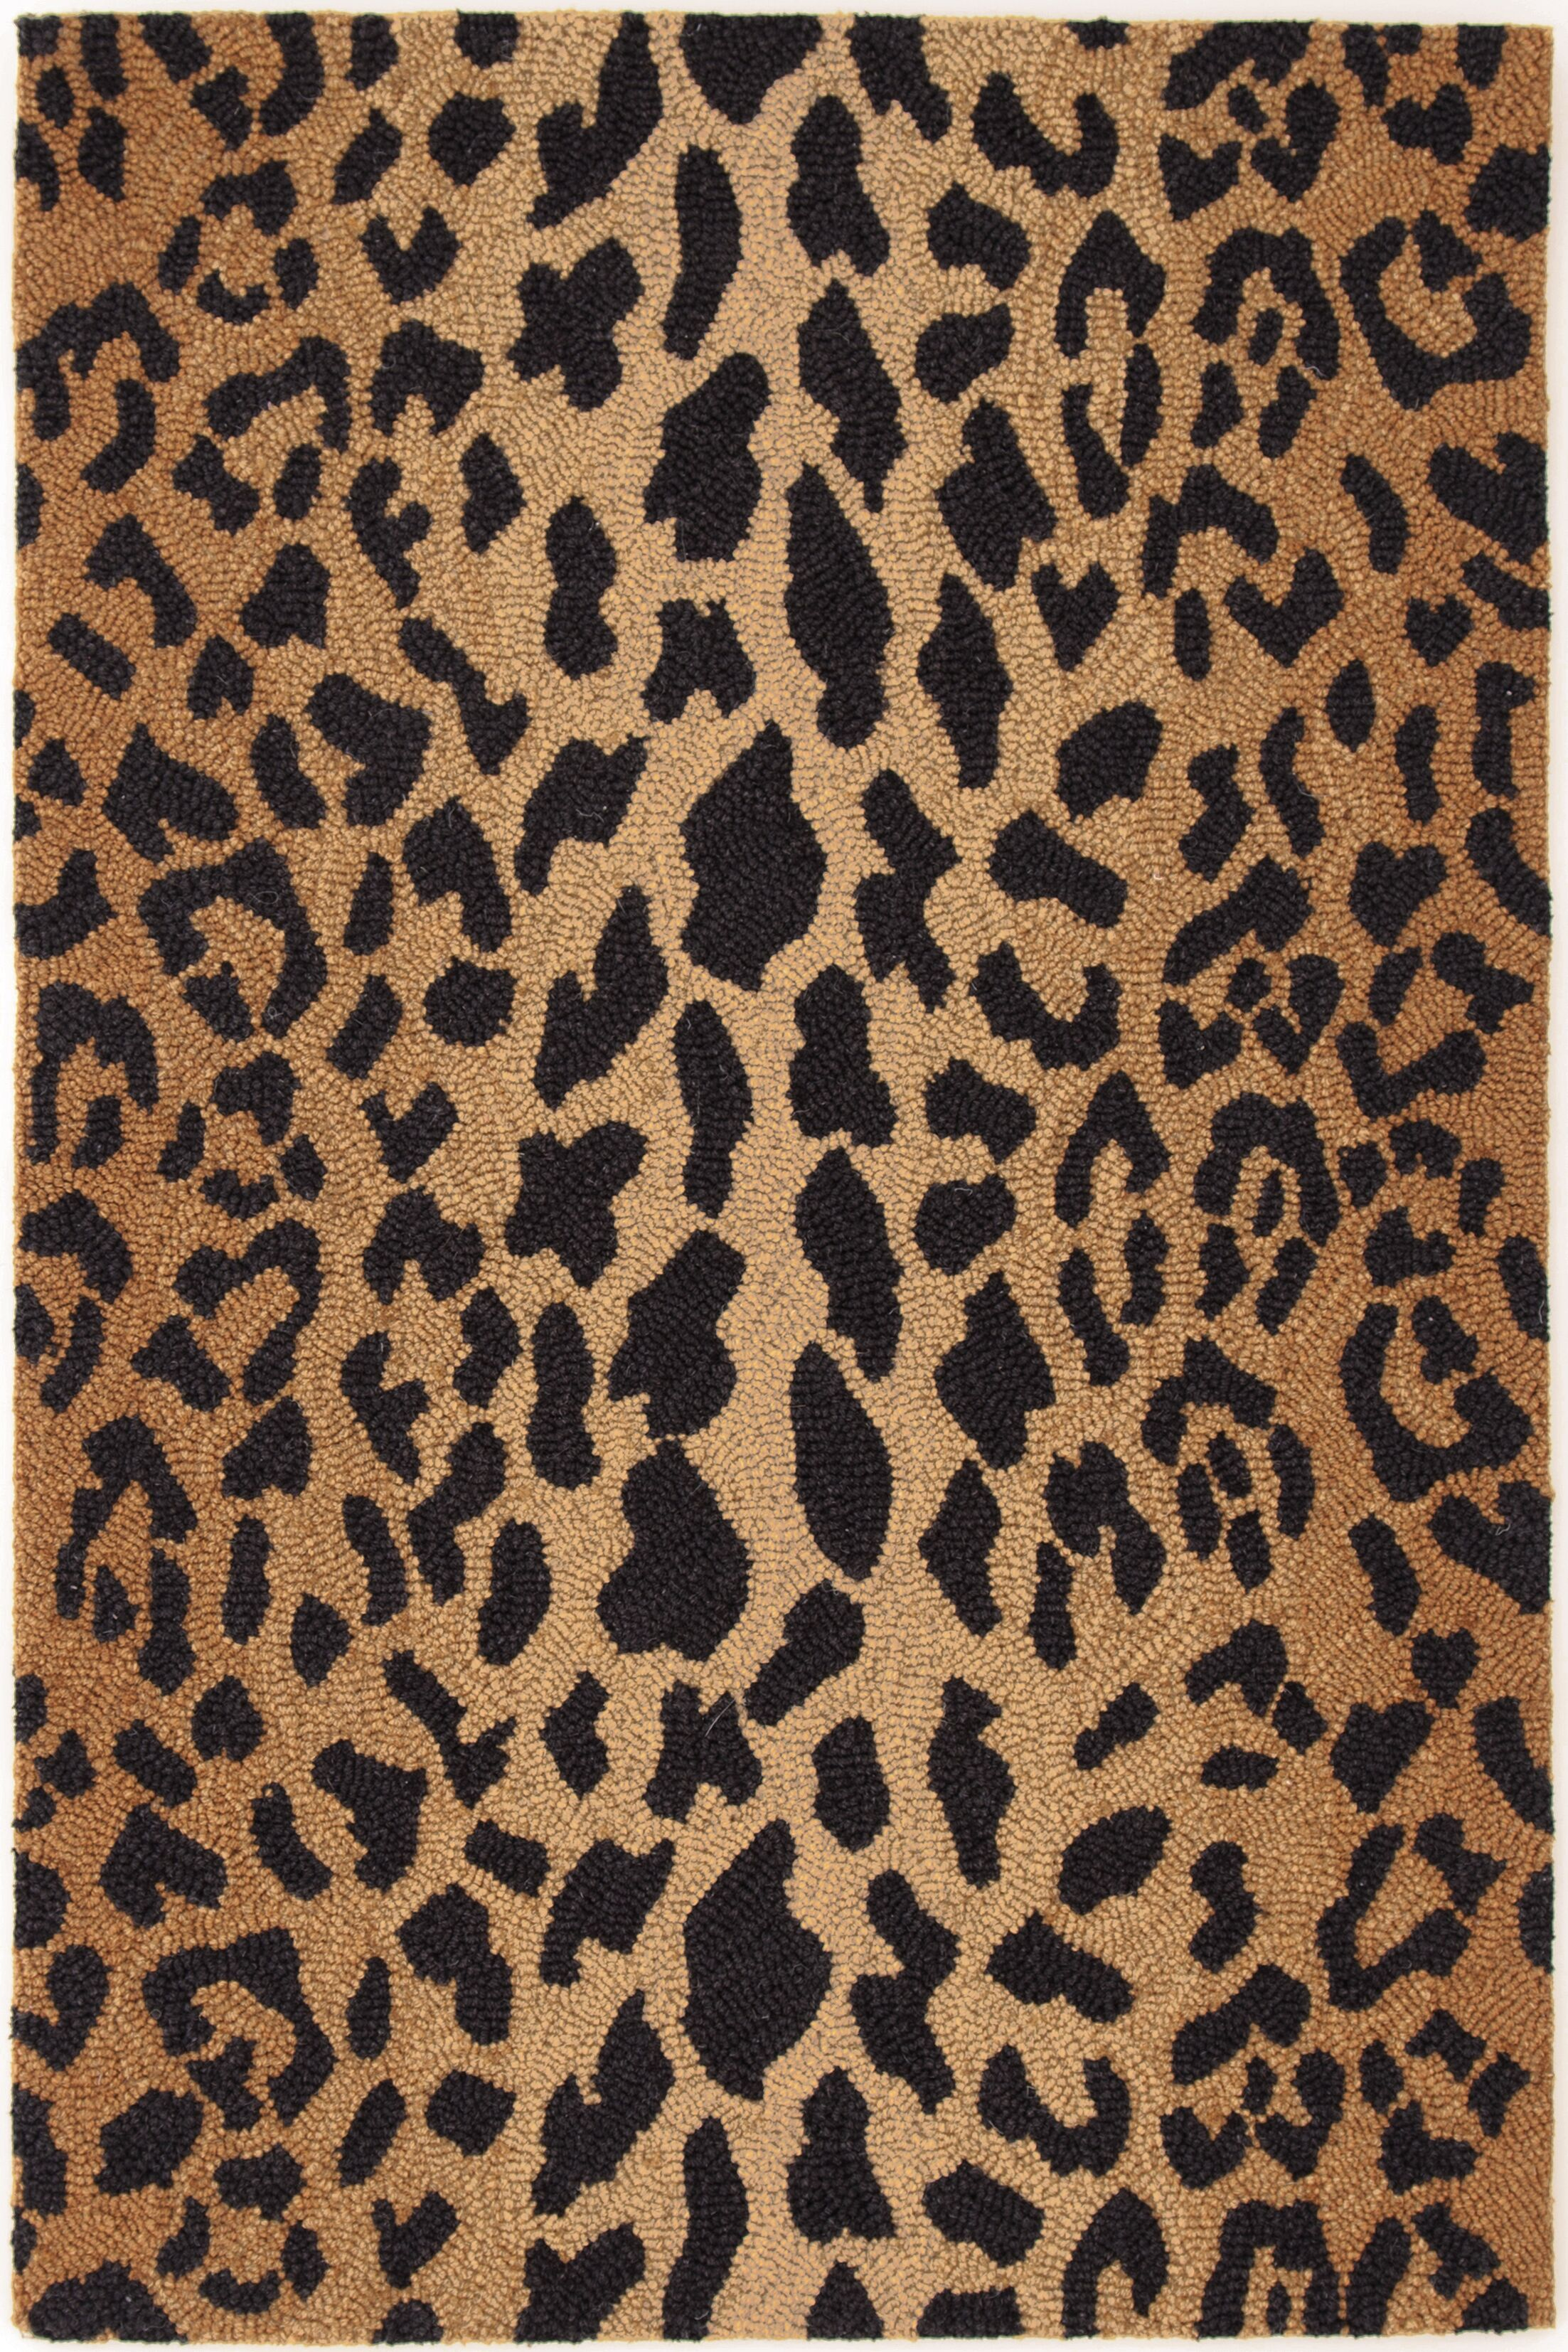 Hooked Brown/Black Area Rug Rug Size: Rectangle 5' x 8'